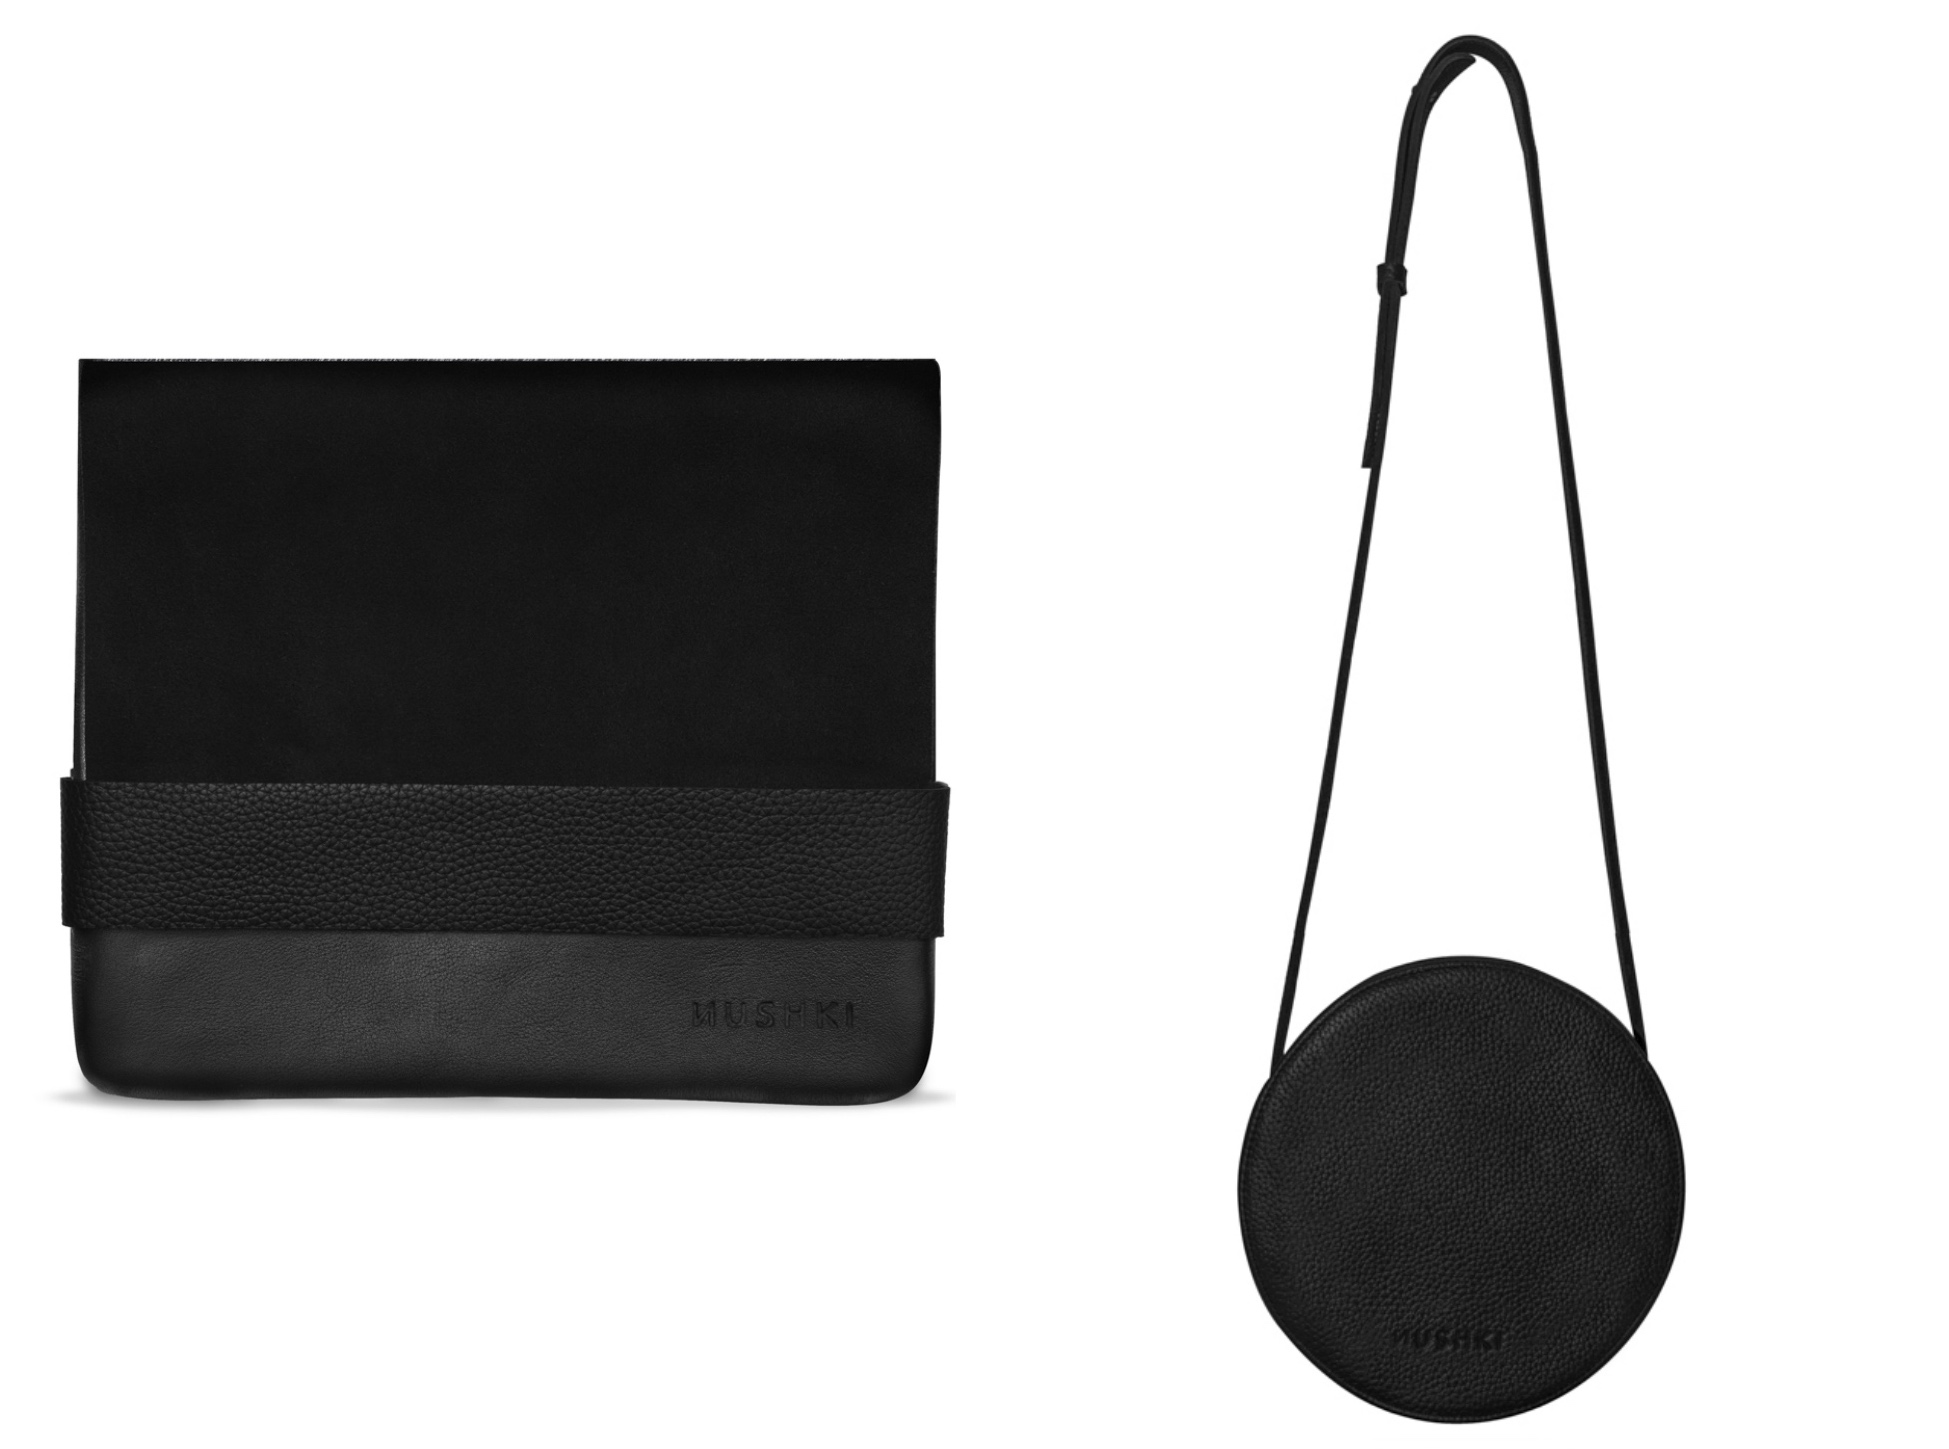 nushki ethical leather bag